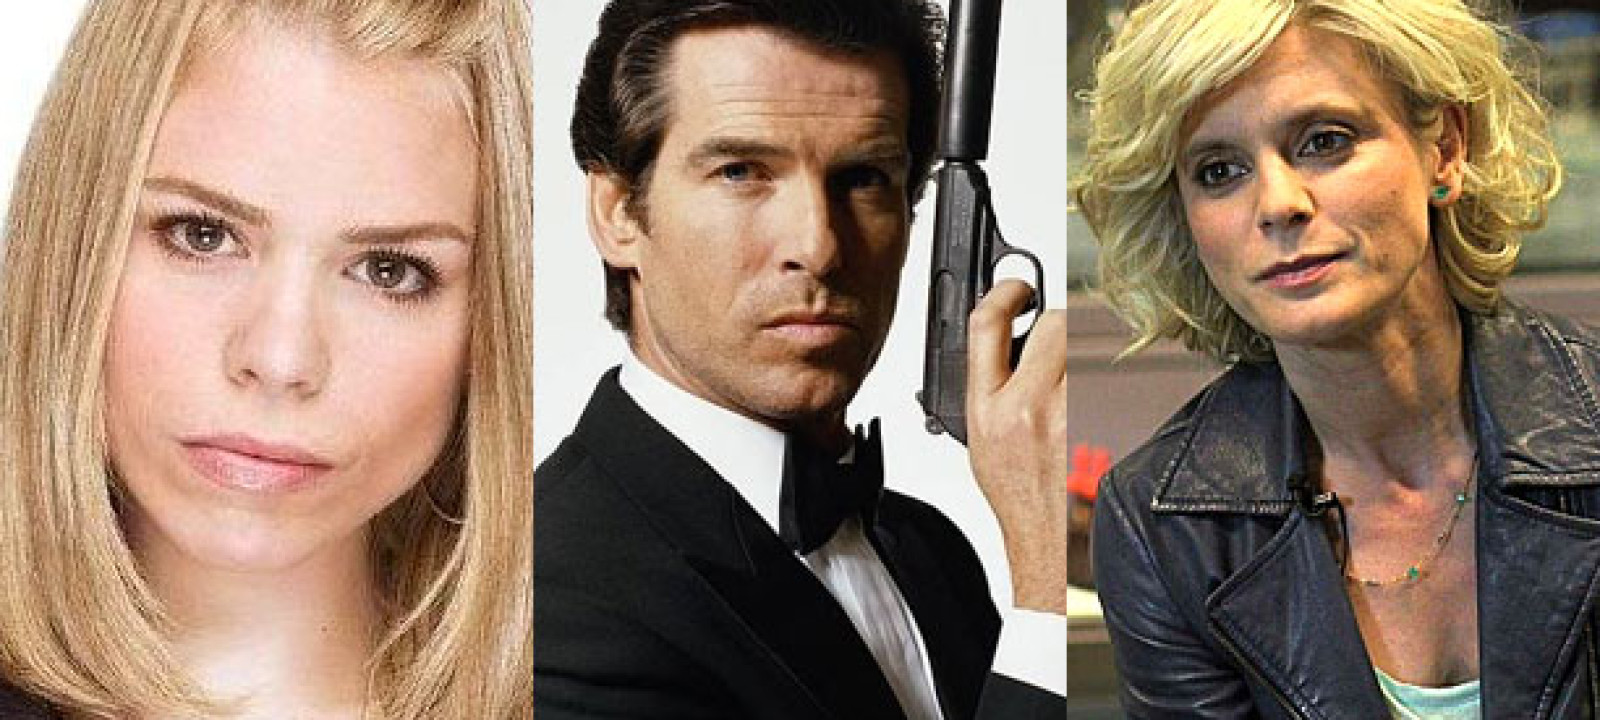 Billie Piper, Pierce Brosnan and Emilia Fox